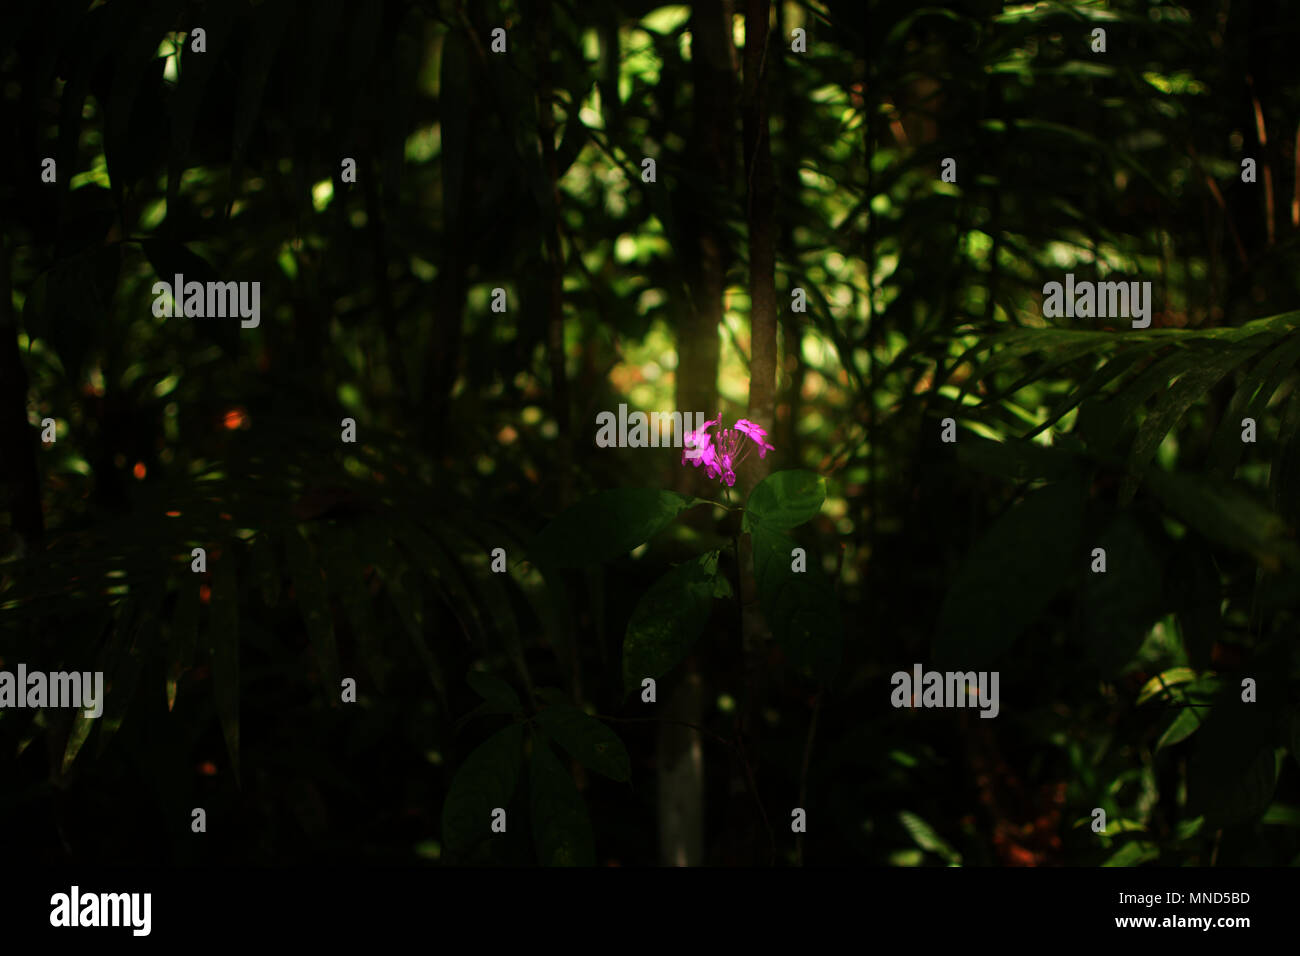 Single Pink Flower In A Dark Forest Wallpaper Background Stock Photo